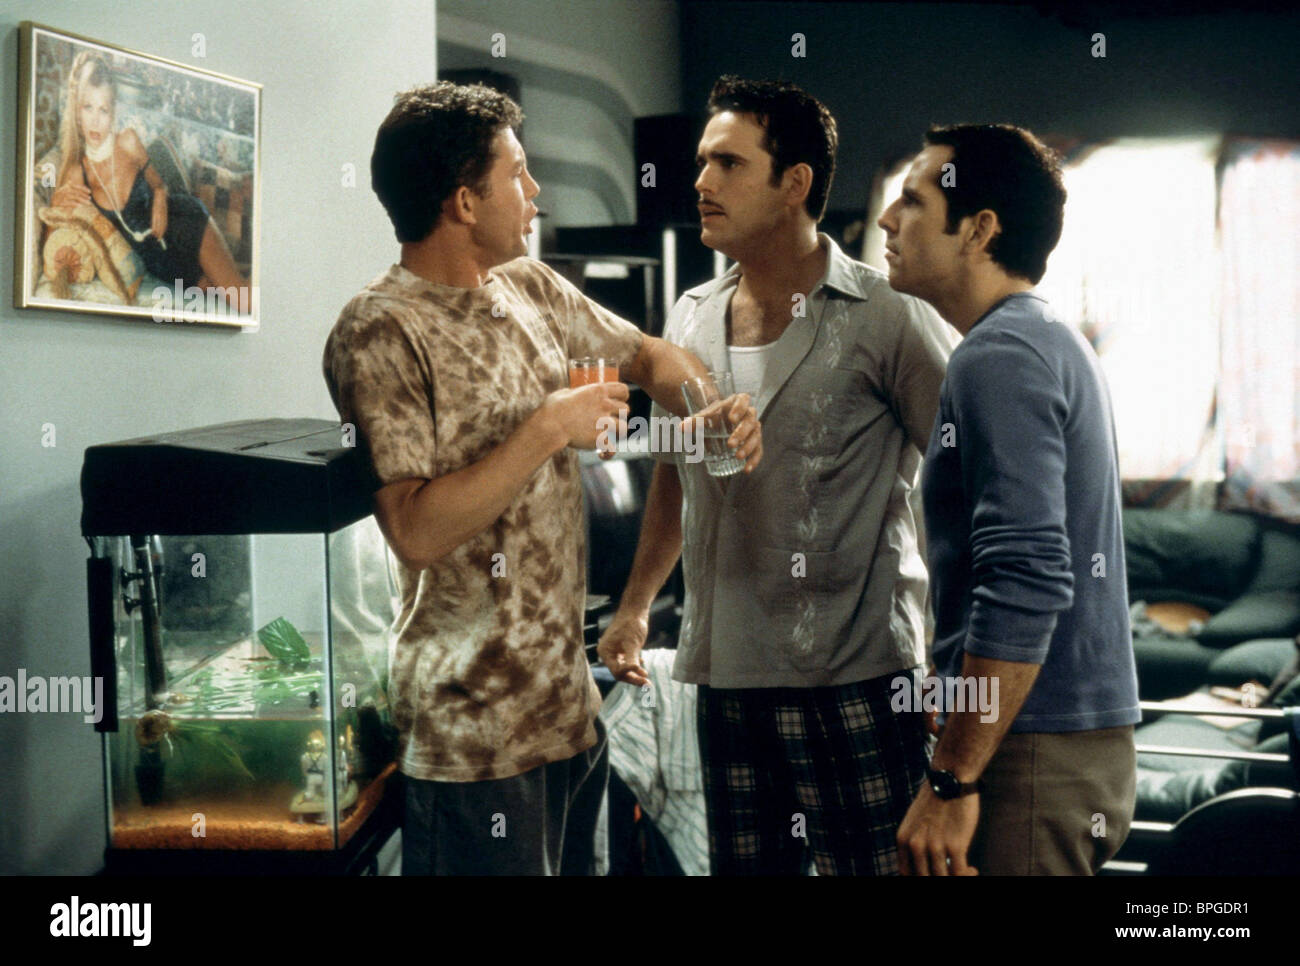 LEE EVANS, MATT DILLON, BEN STILLER, THERE'S SOMETHING ABOUT MARY, 1998 - Stock Image